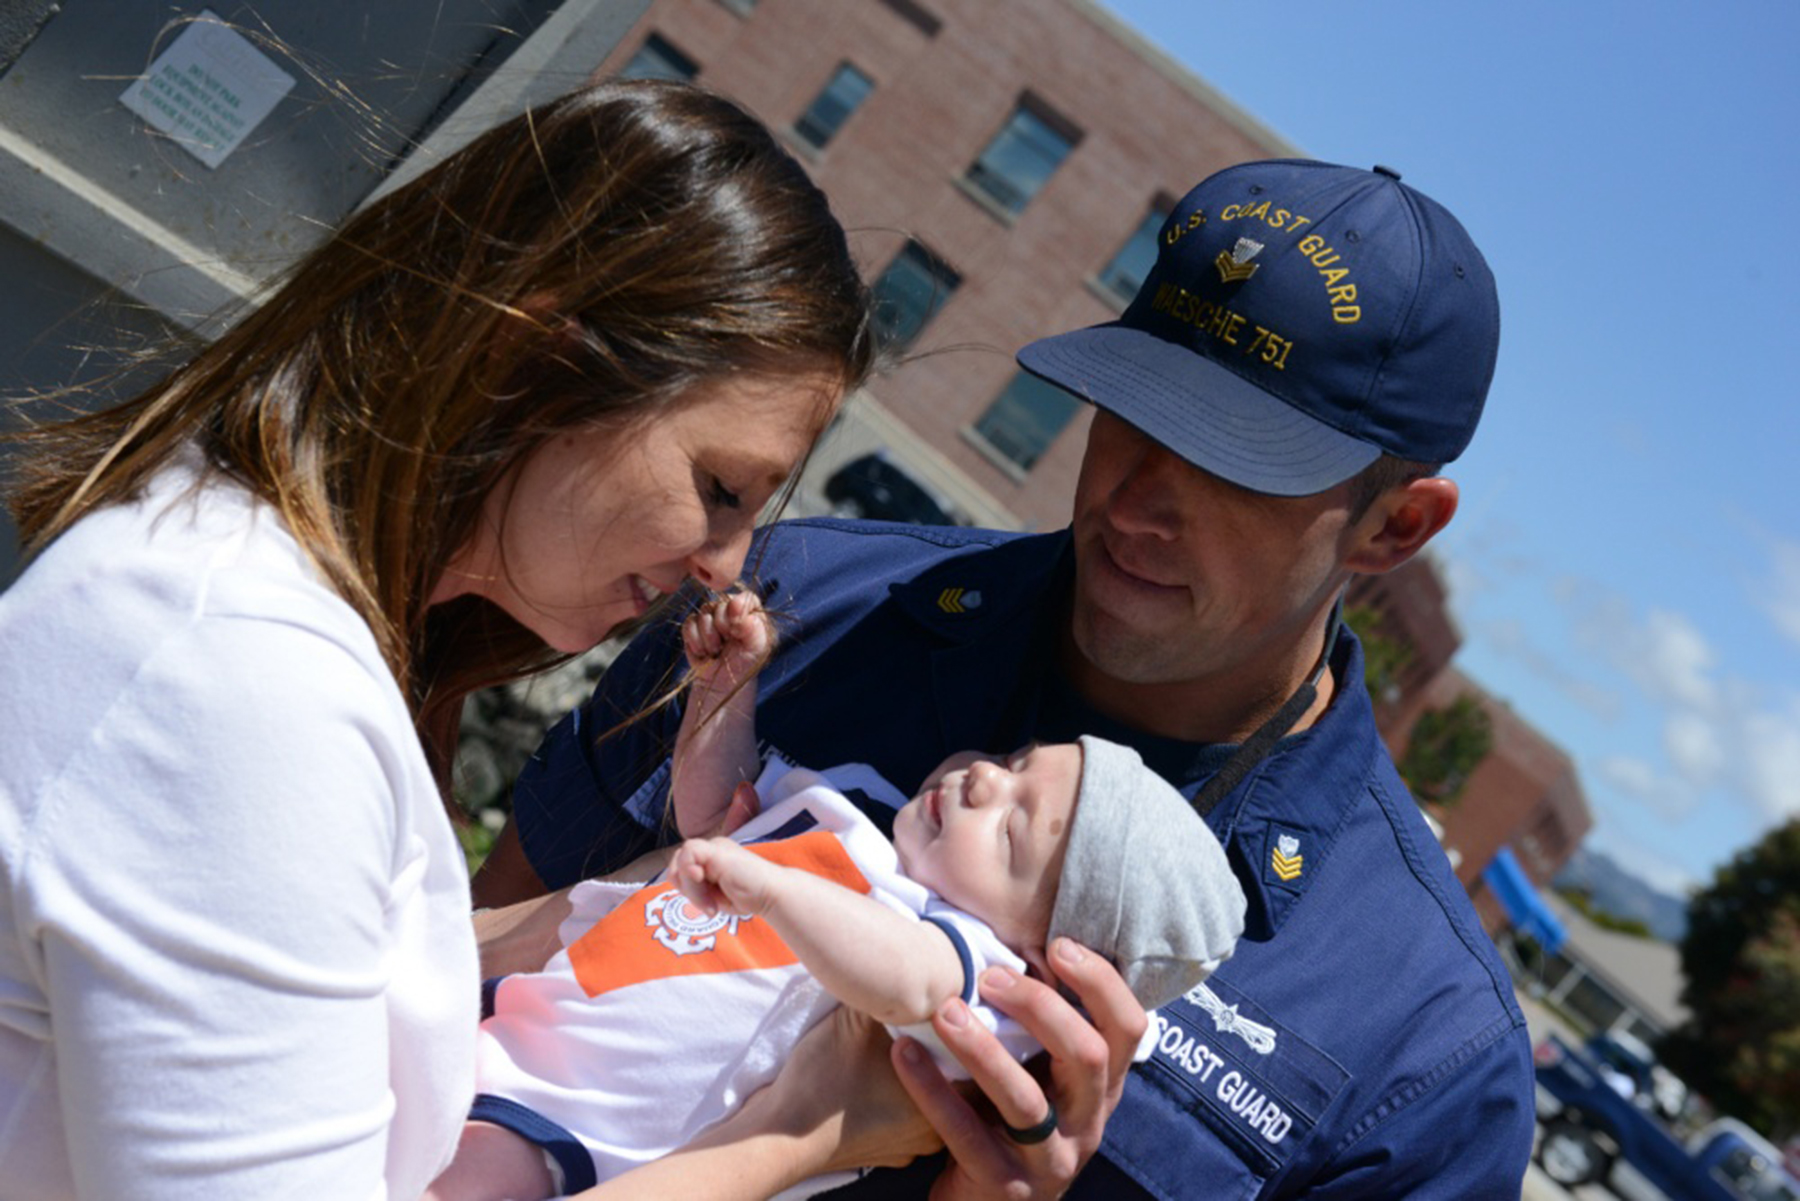 Coast Guard Chief Petty Officer Sarah Foster   Petty Officer 1st Class Ryan Lewis, Coast Guard Cutter Waesche crewmember, greets his wife and newborn upon the ship's return to homeport at Coast Guard Island Wednesday, June 15. The ship returned after completing a 109-day deployment.